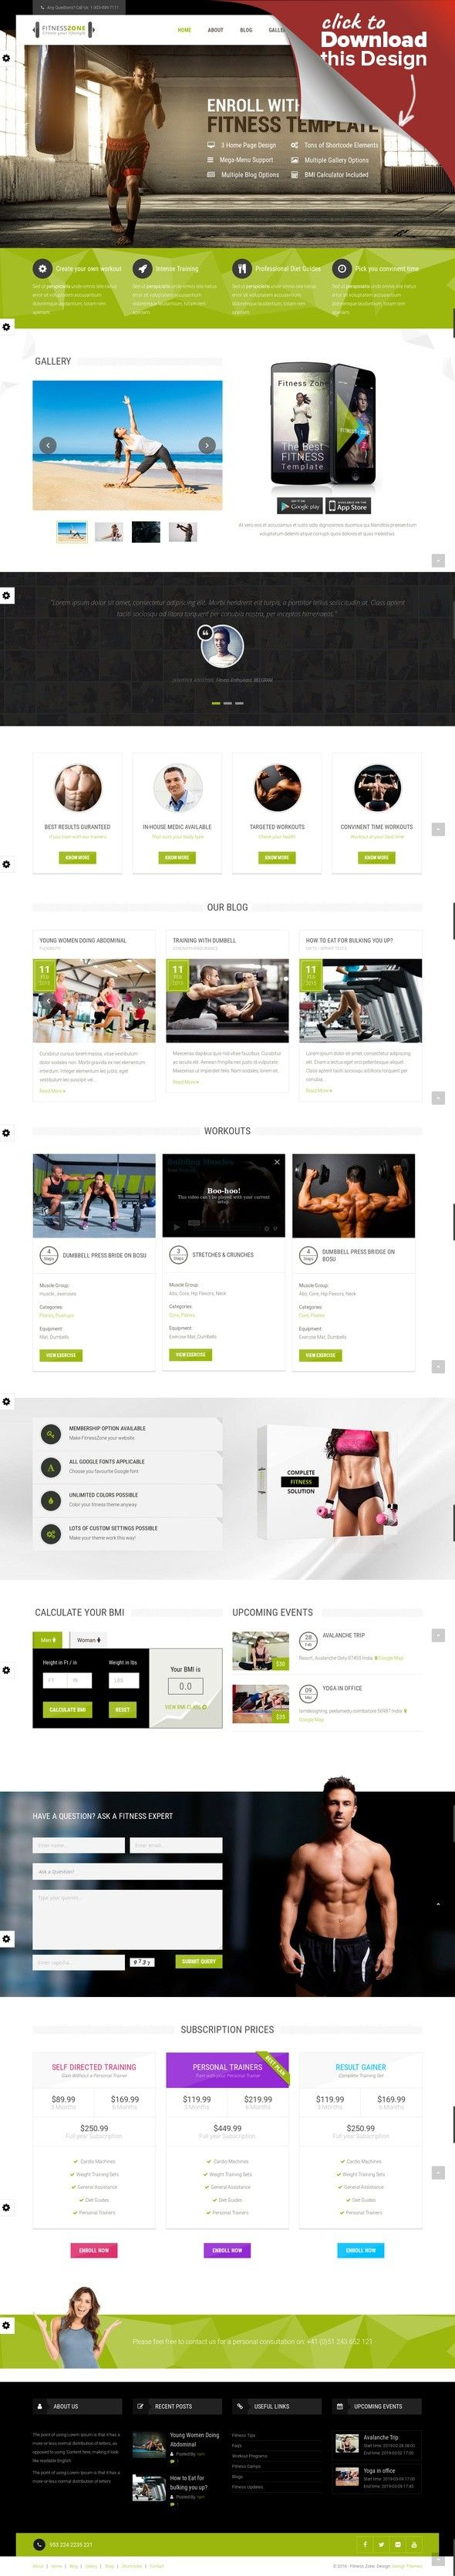 Fitness Zone | Gym & Fitness Theme, perfect fit for fitness centers and Gyms body building, boxing, classes, coach, crossfit, fitness, fitness centre, gym, health, personal trainer, responsive, sport club, sports, swimming, trainers Fitness Zone Wordpress theme muscled for modern trend, gyms, sport club or fitness centre and personal trainers! Fully responsive layout that looks great on mobile and tablet devices. With inbuilt drag and drop pag...